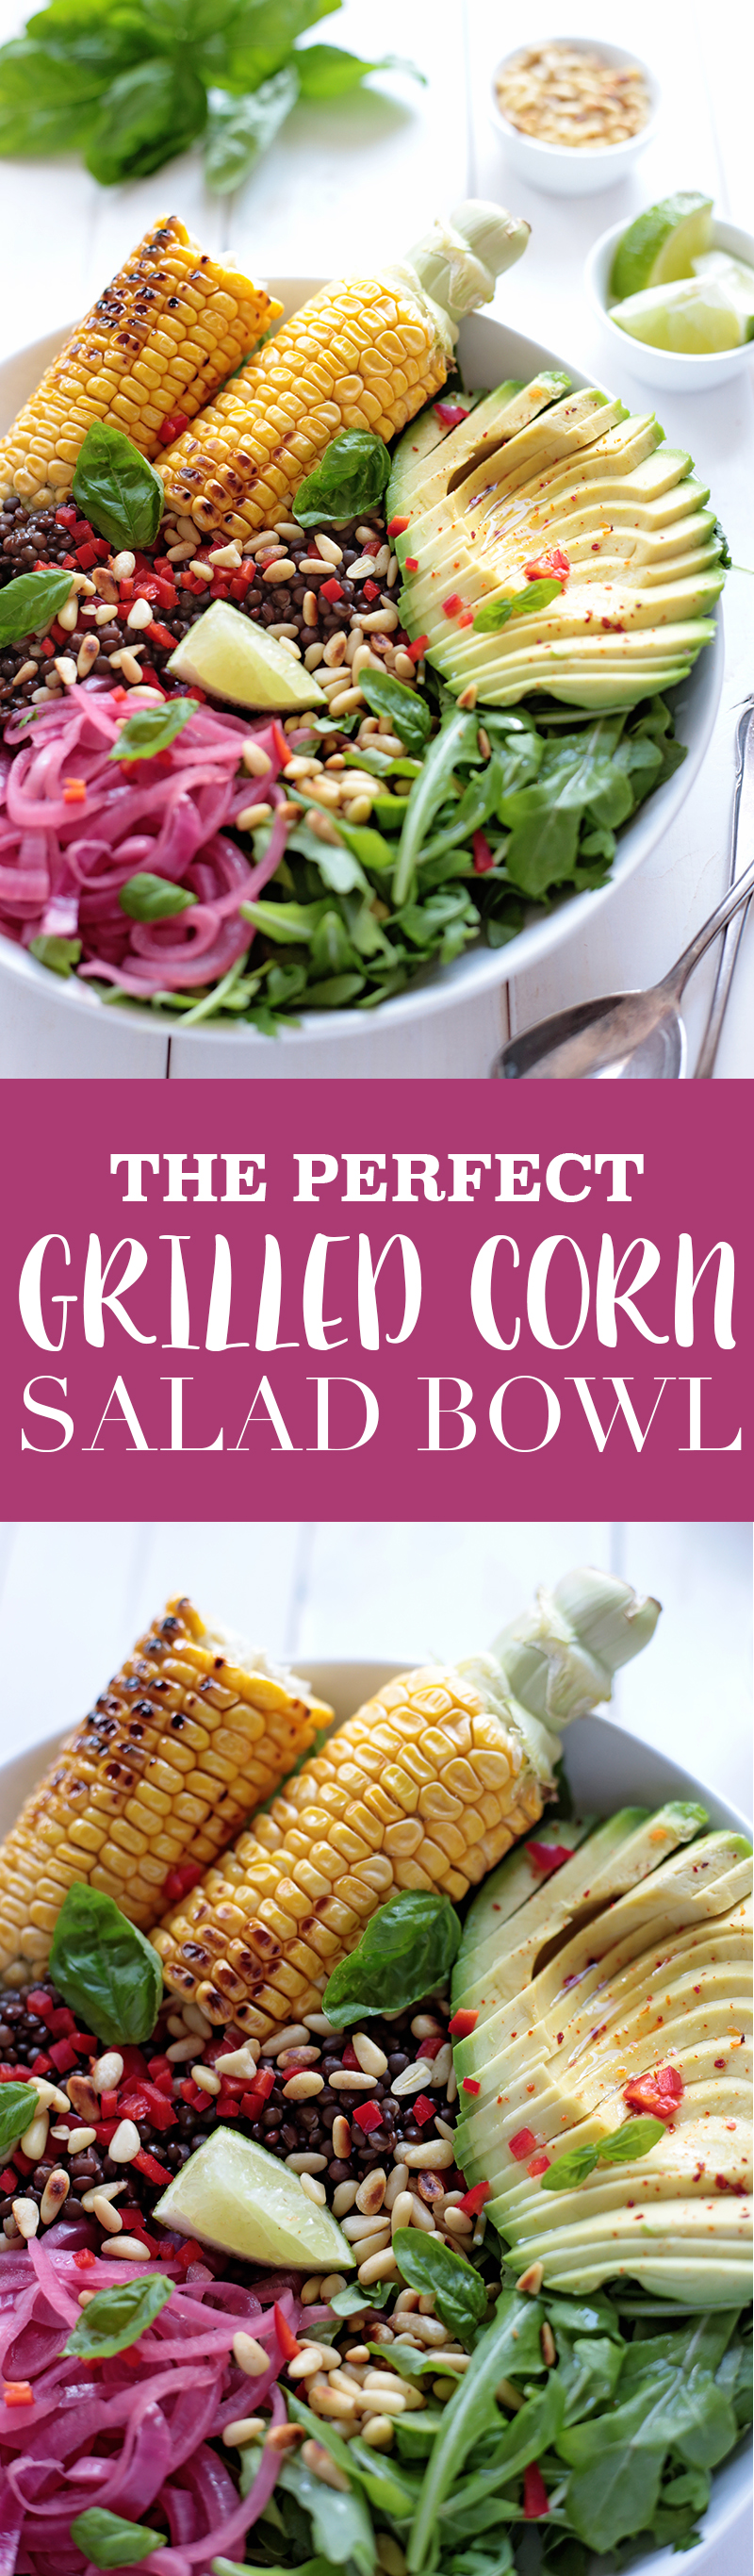 Grilled Corn Salad Bowl